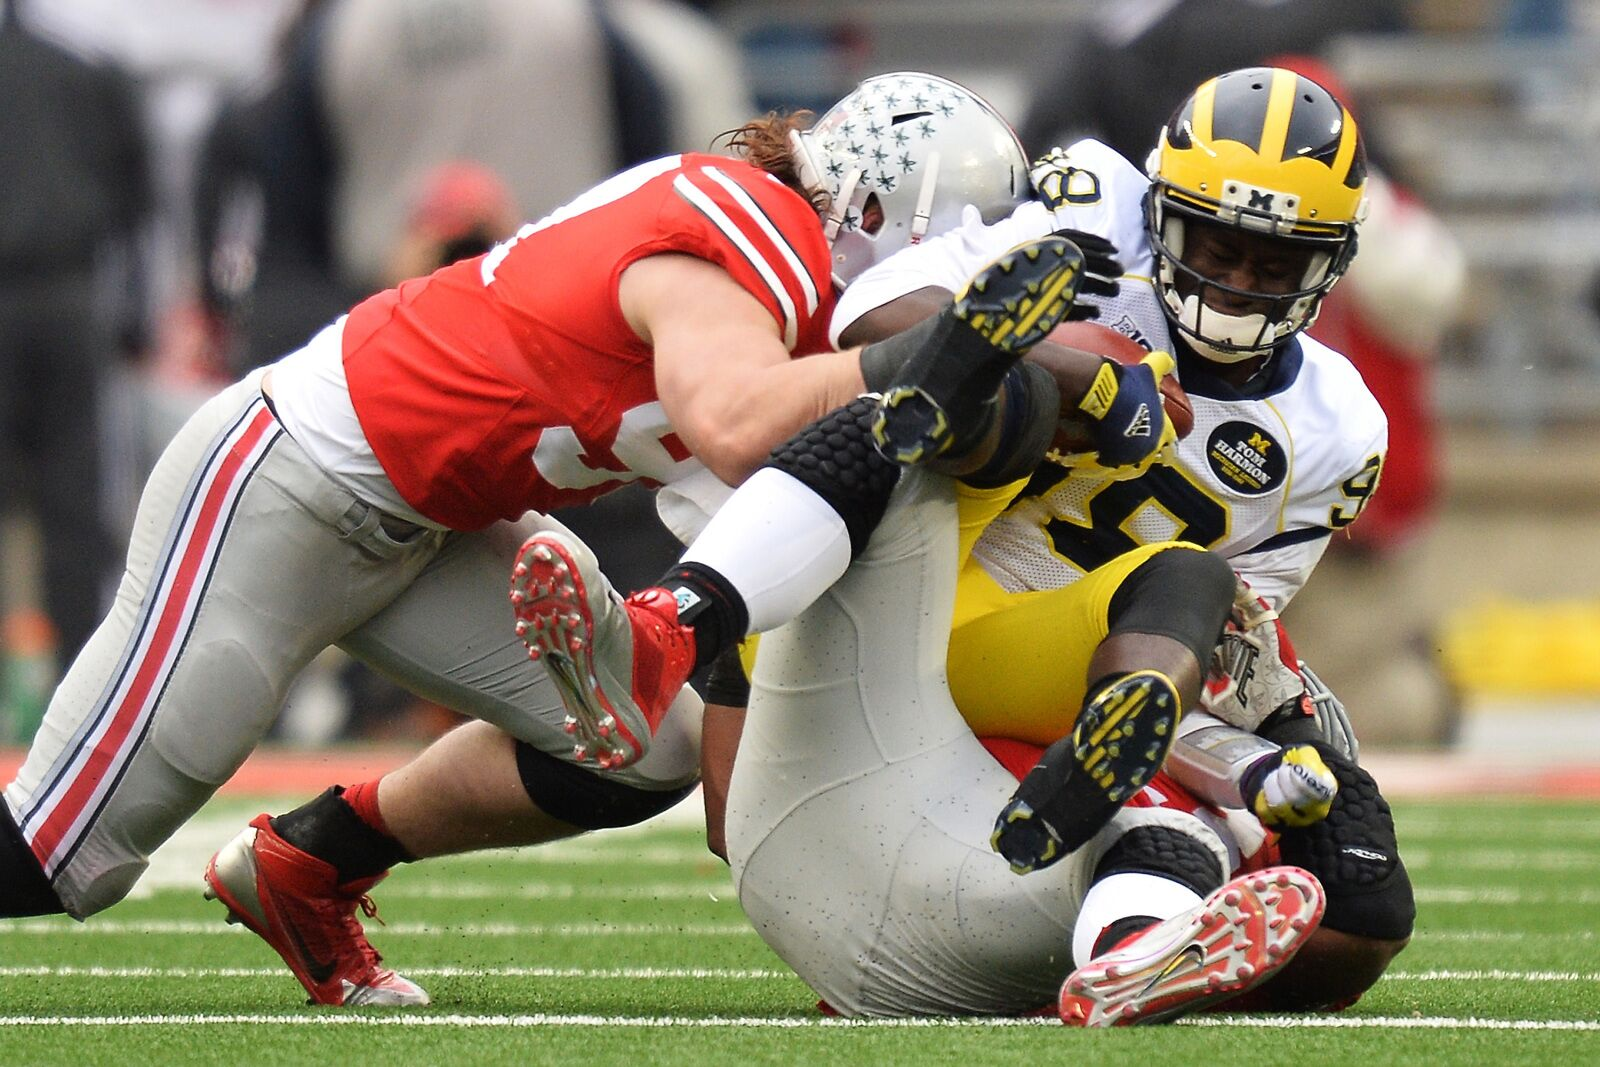 Ohio State Football: Leaving after 3 years paid off for these Buckeyes